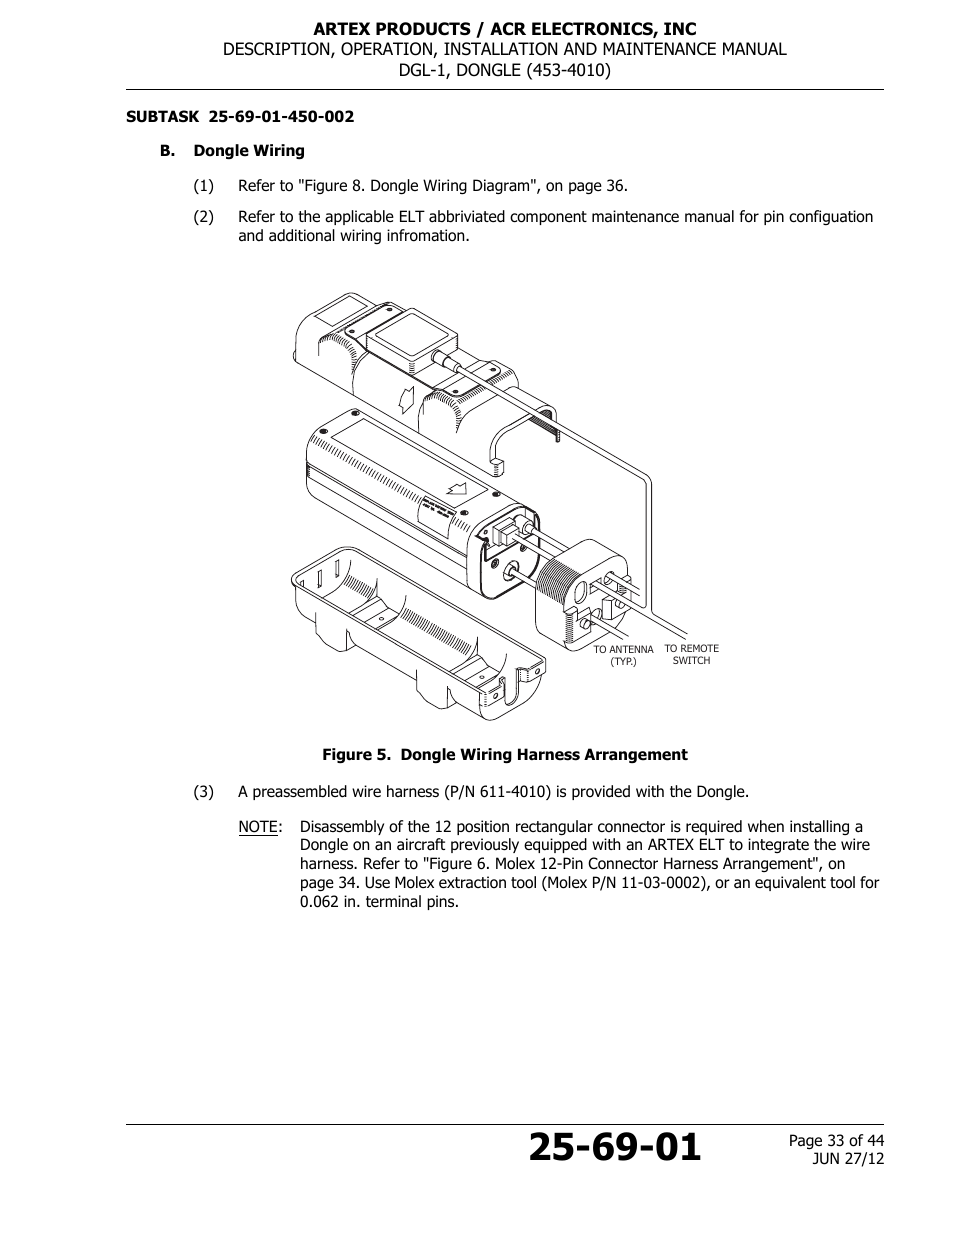 B Dongle Wiring Figure 5 Harness Arrangement Wire Pin Tool Acrartex Dgl 1 User Manual Page 33 44